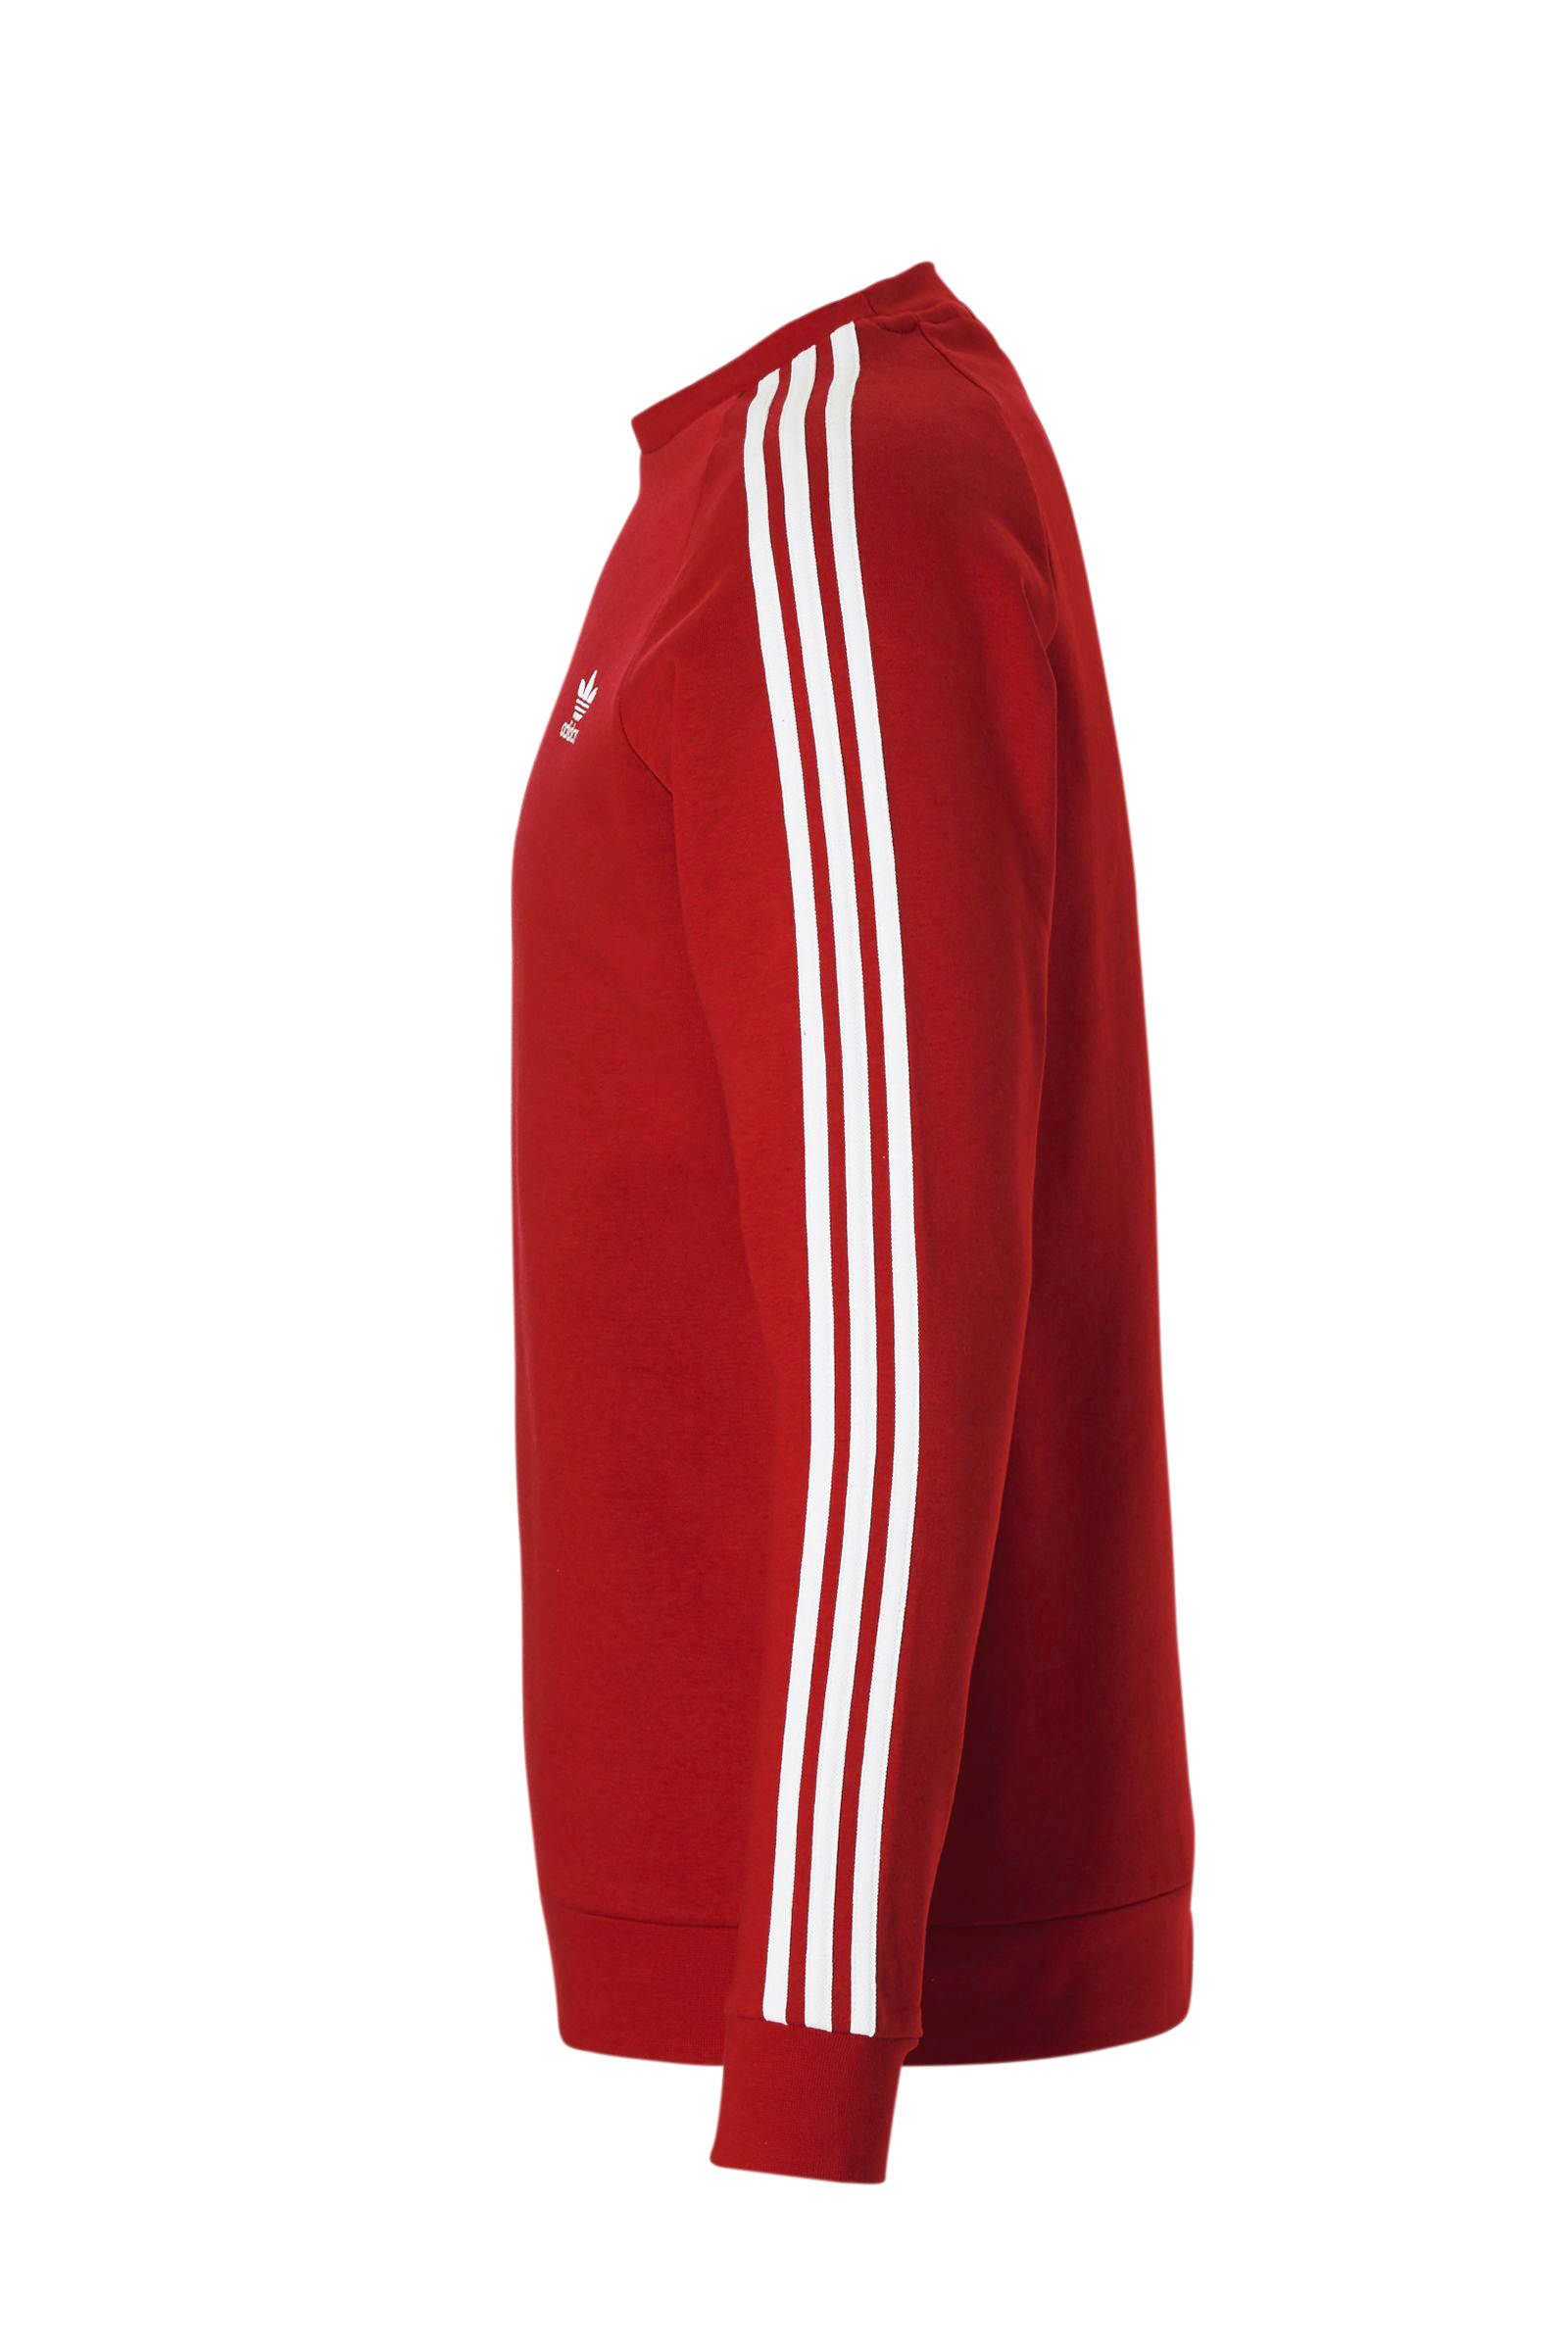 2303748eea adidas-originals-sweater-rood-rood-4060507243412.jpg